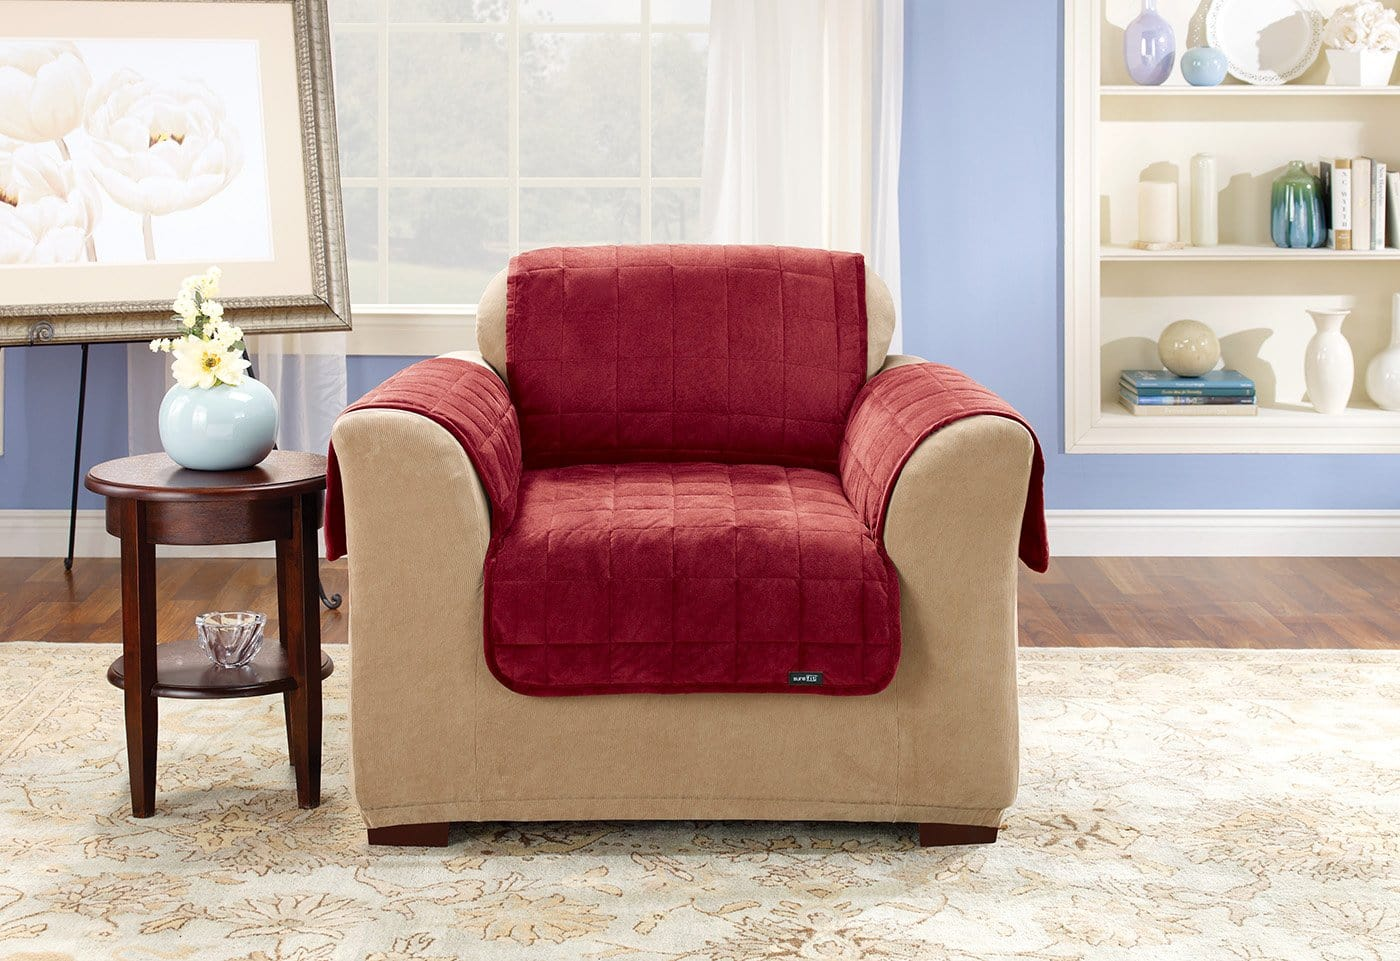 Deluxe Comfort Chair Furniture Cover With Arms Microban® Antimicrobial Pet Furniture Cover Machine Washable - Chair / Burgundy